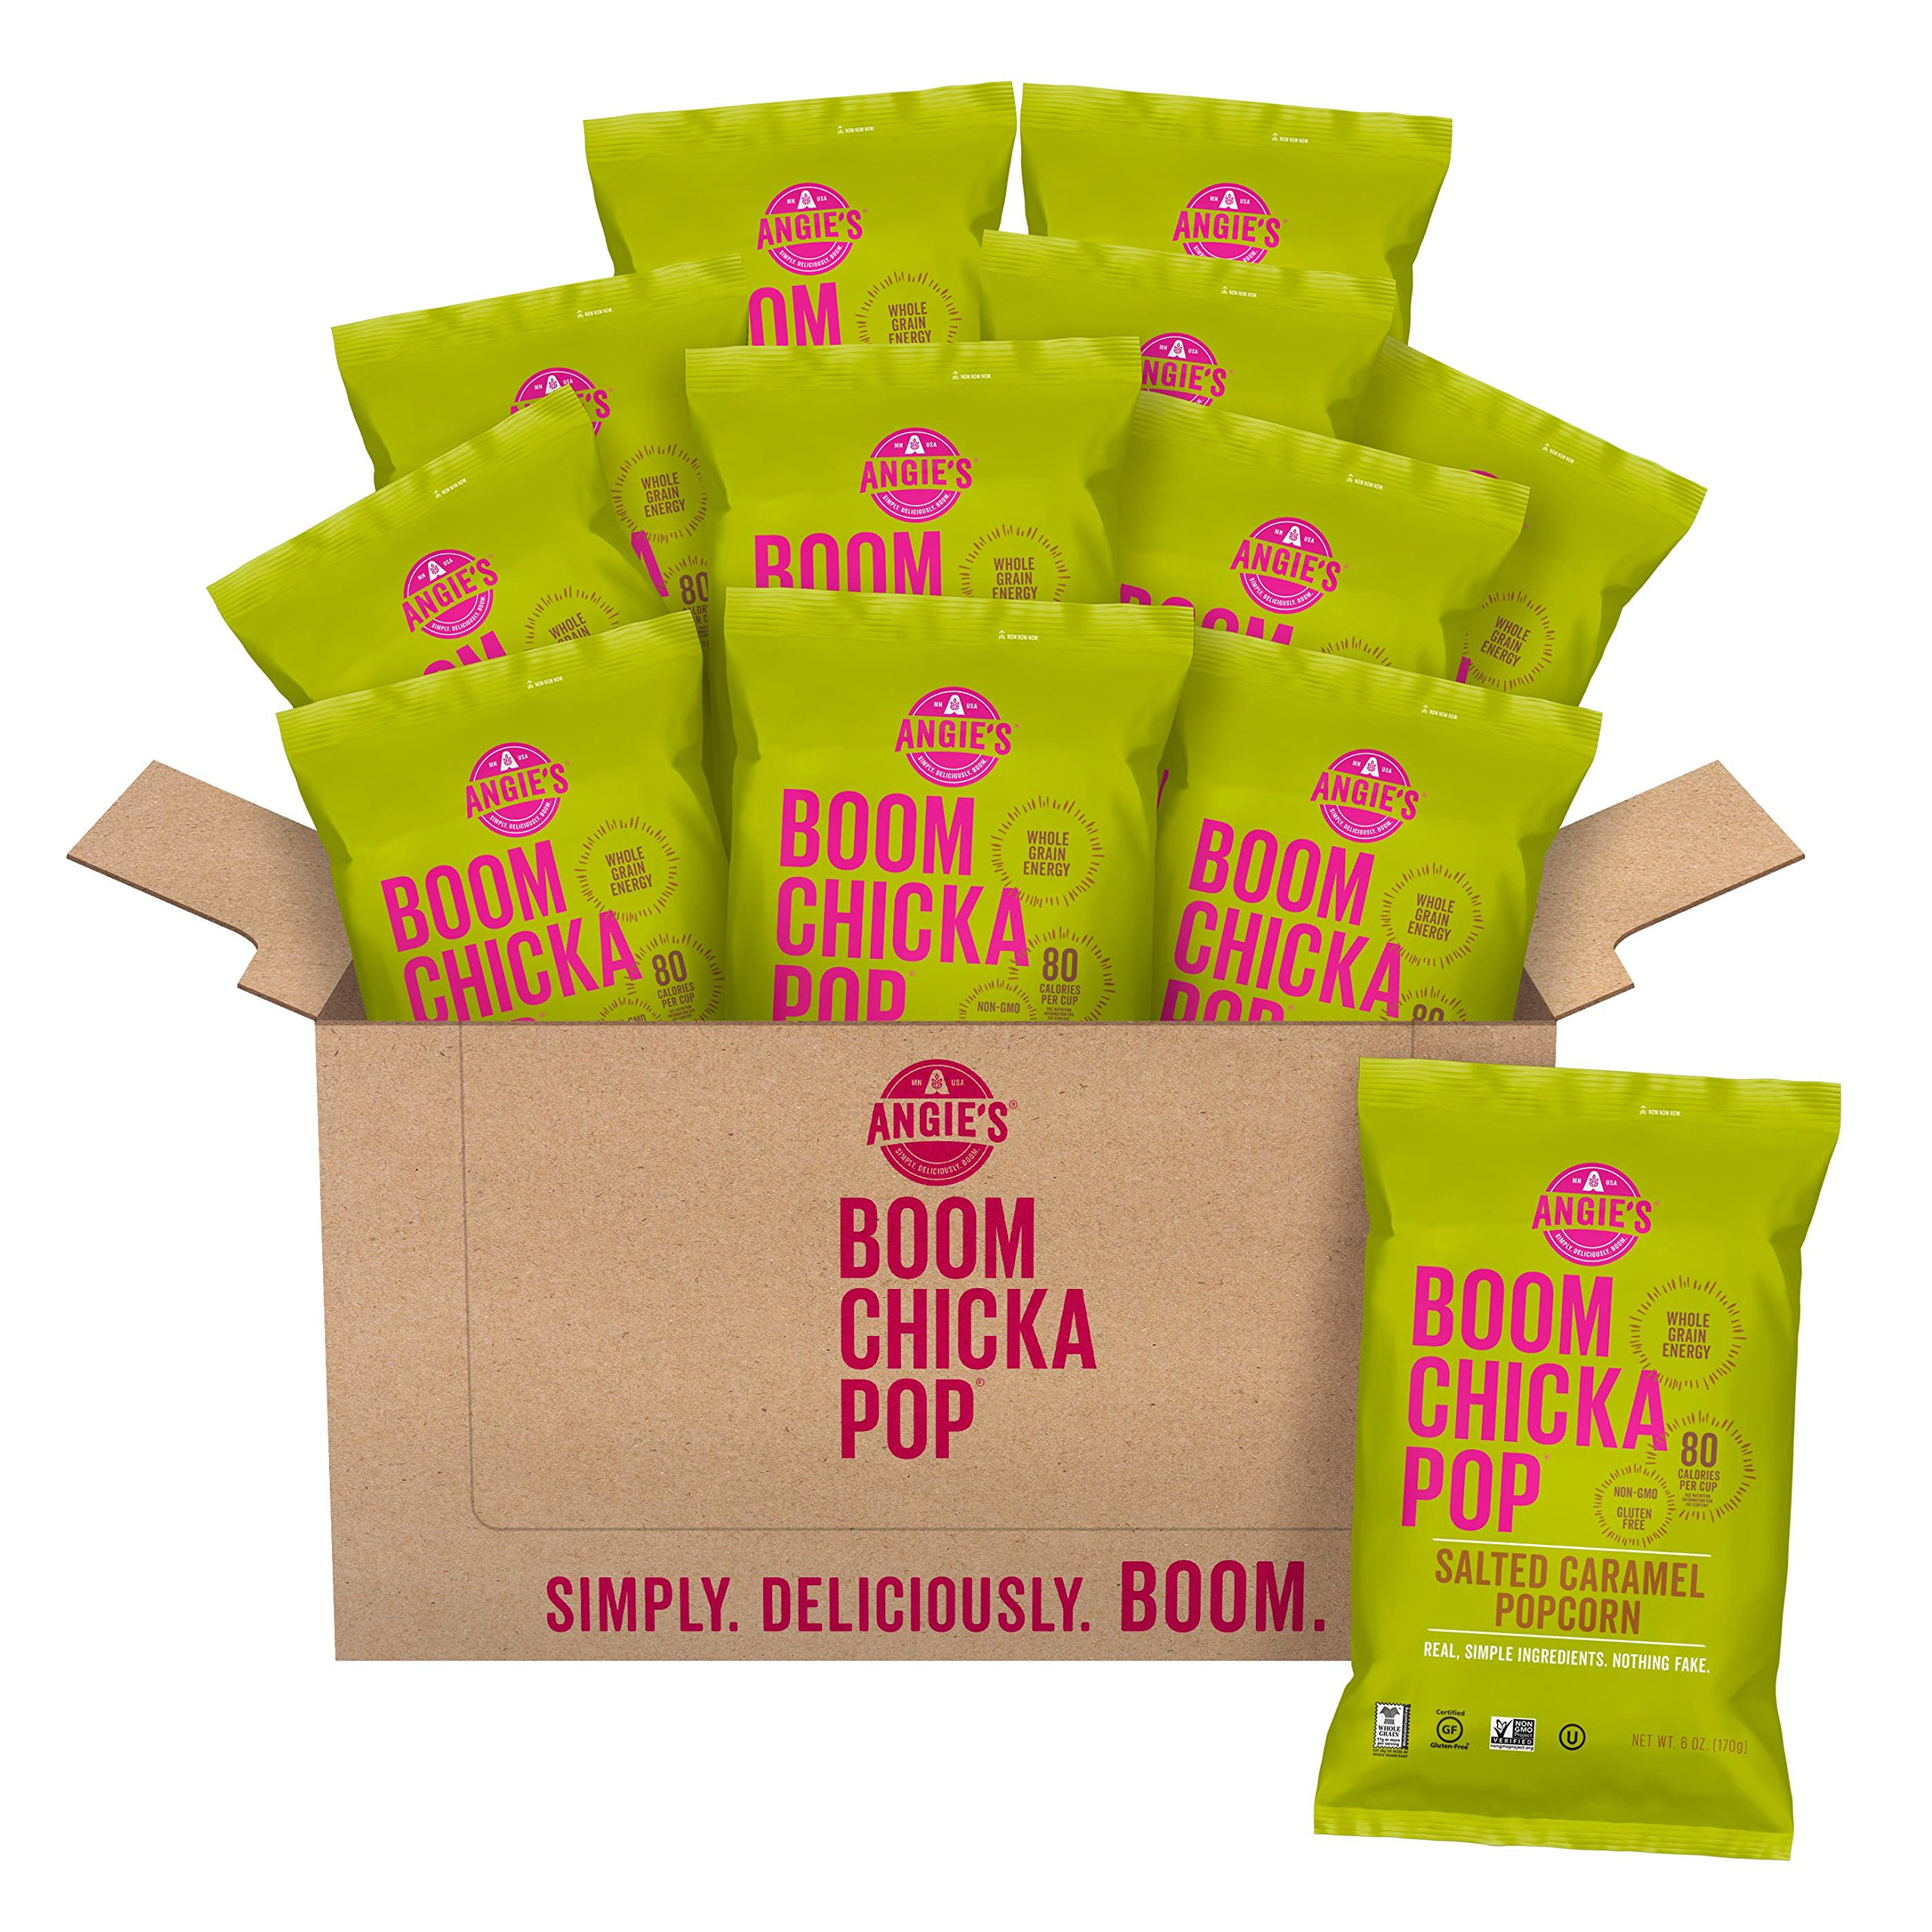 BOOMCHICKAPOP Angie's Vegan Salted Caramel Popcorn, 6 Ounce Bag (Pack of 12 Bags)